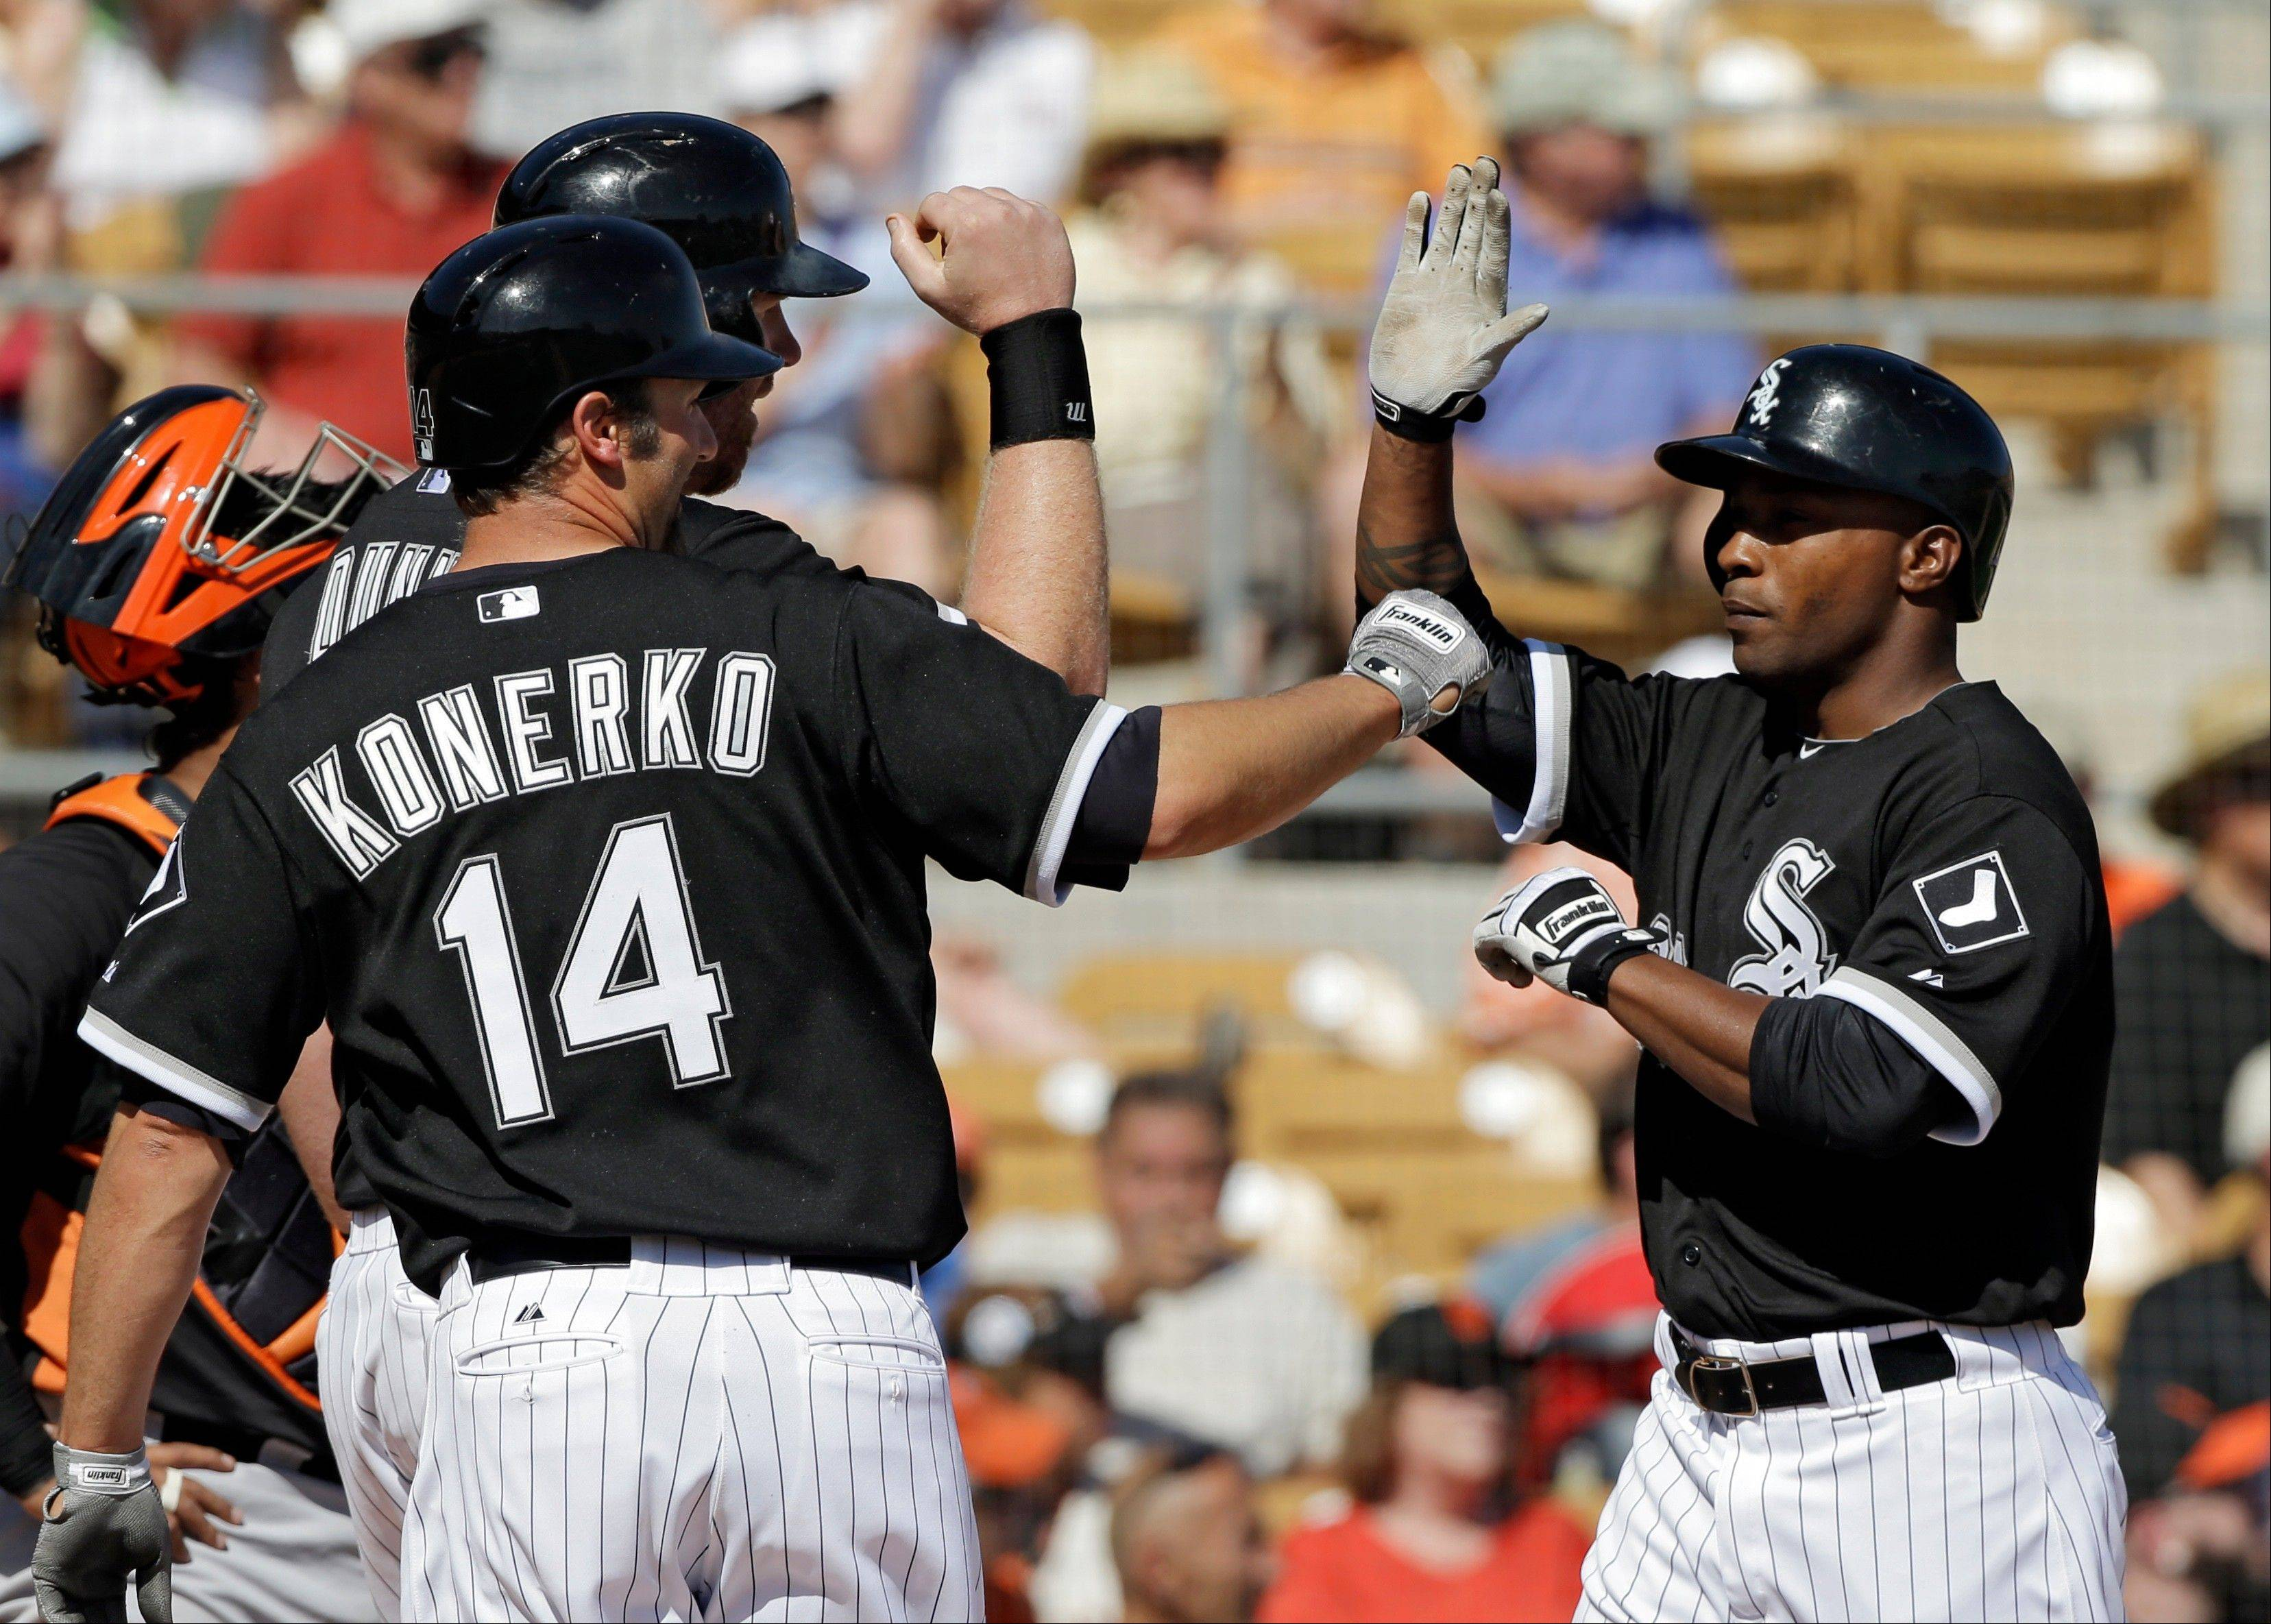 Chicago White Sox's Dewayne Wise, right, is welcomed home by Paul Konerko (14) and Adam Dunn after they score on Wise's three-run home run in the fourth inning of an exhibition spring training baseball game against the San Francisco Giants Monday, March 4, 2013, in Glendale, Ariz.